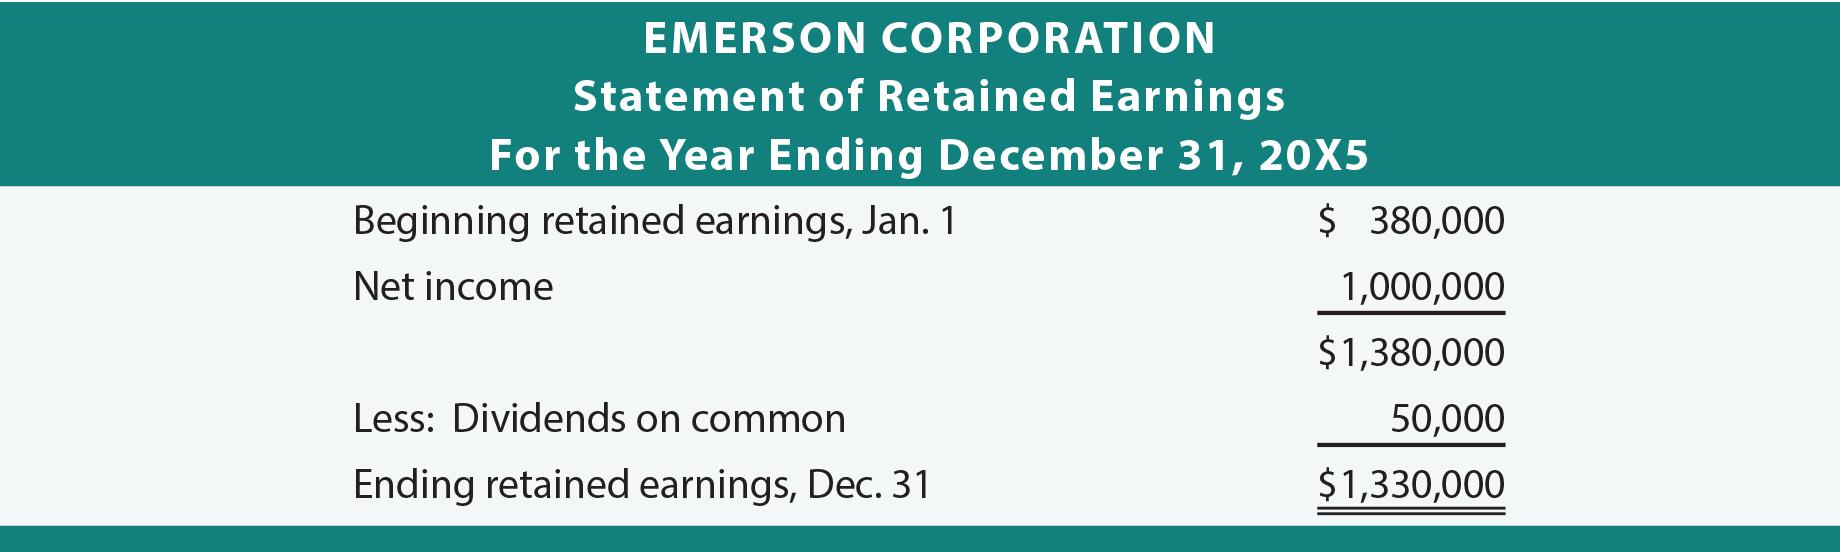 Emerson Corporation Statement of Retained Earnings